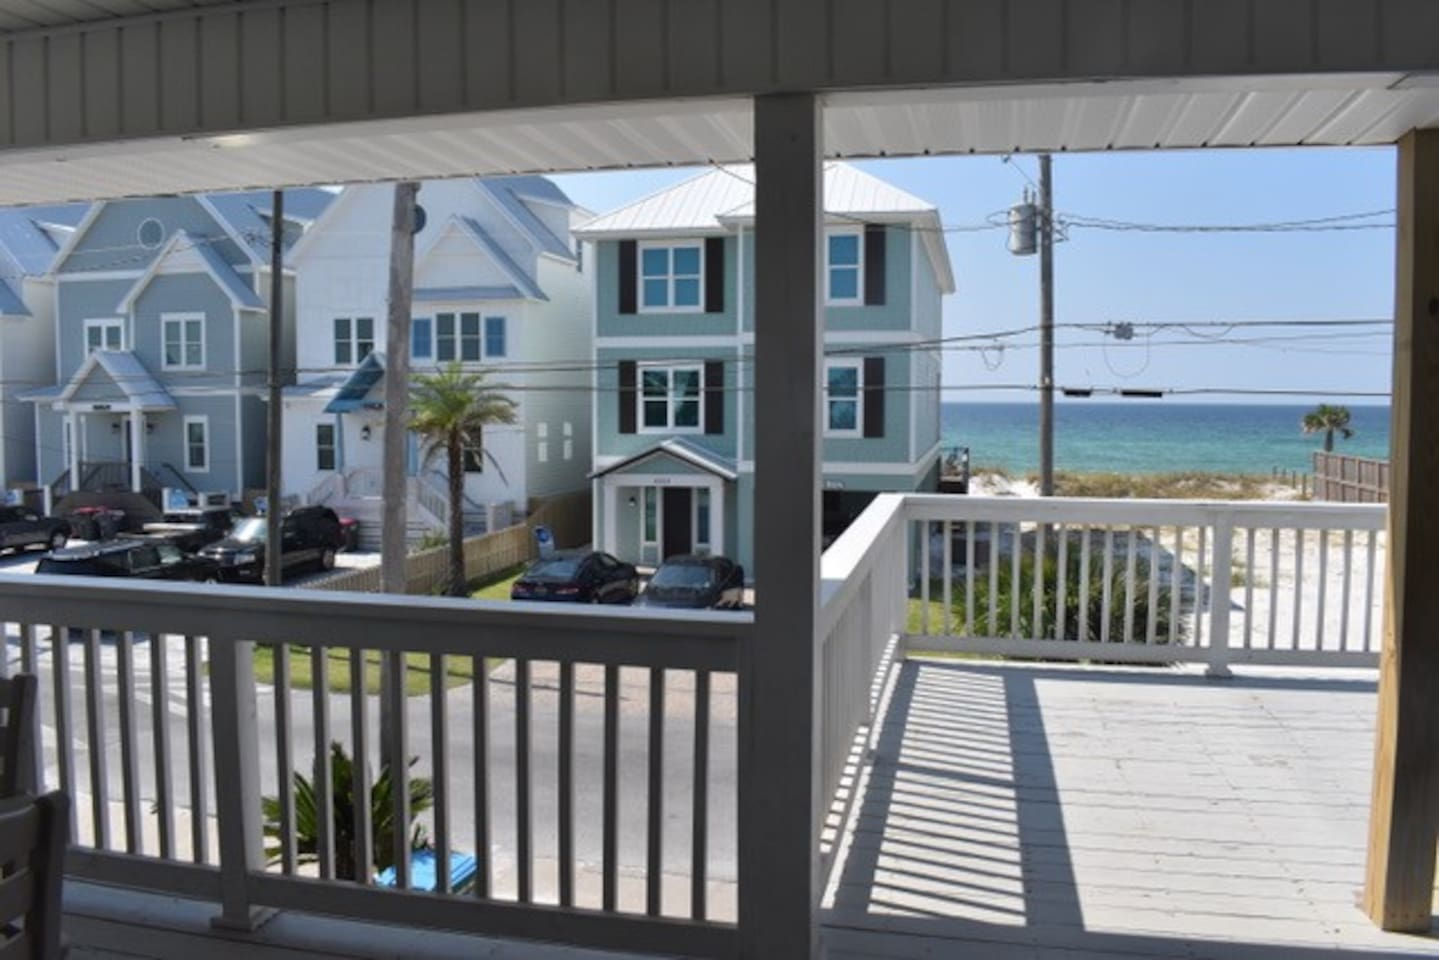 The view from this short-term monthly rental is the perfect oasis by the ocean. Minimum of two months, max of four months: November, December, January and February.